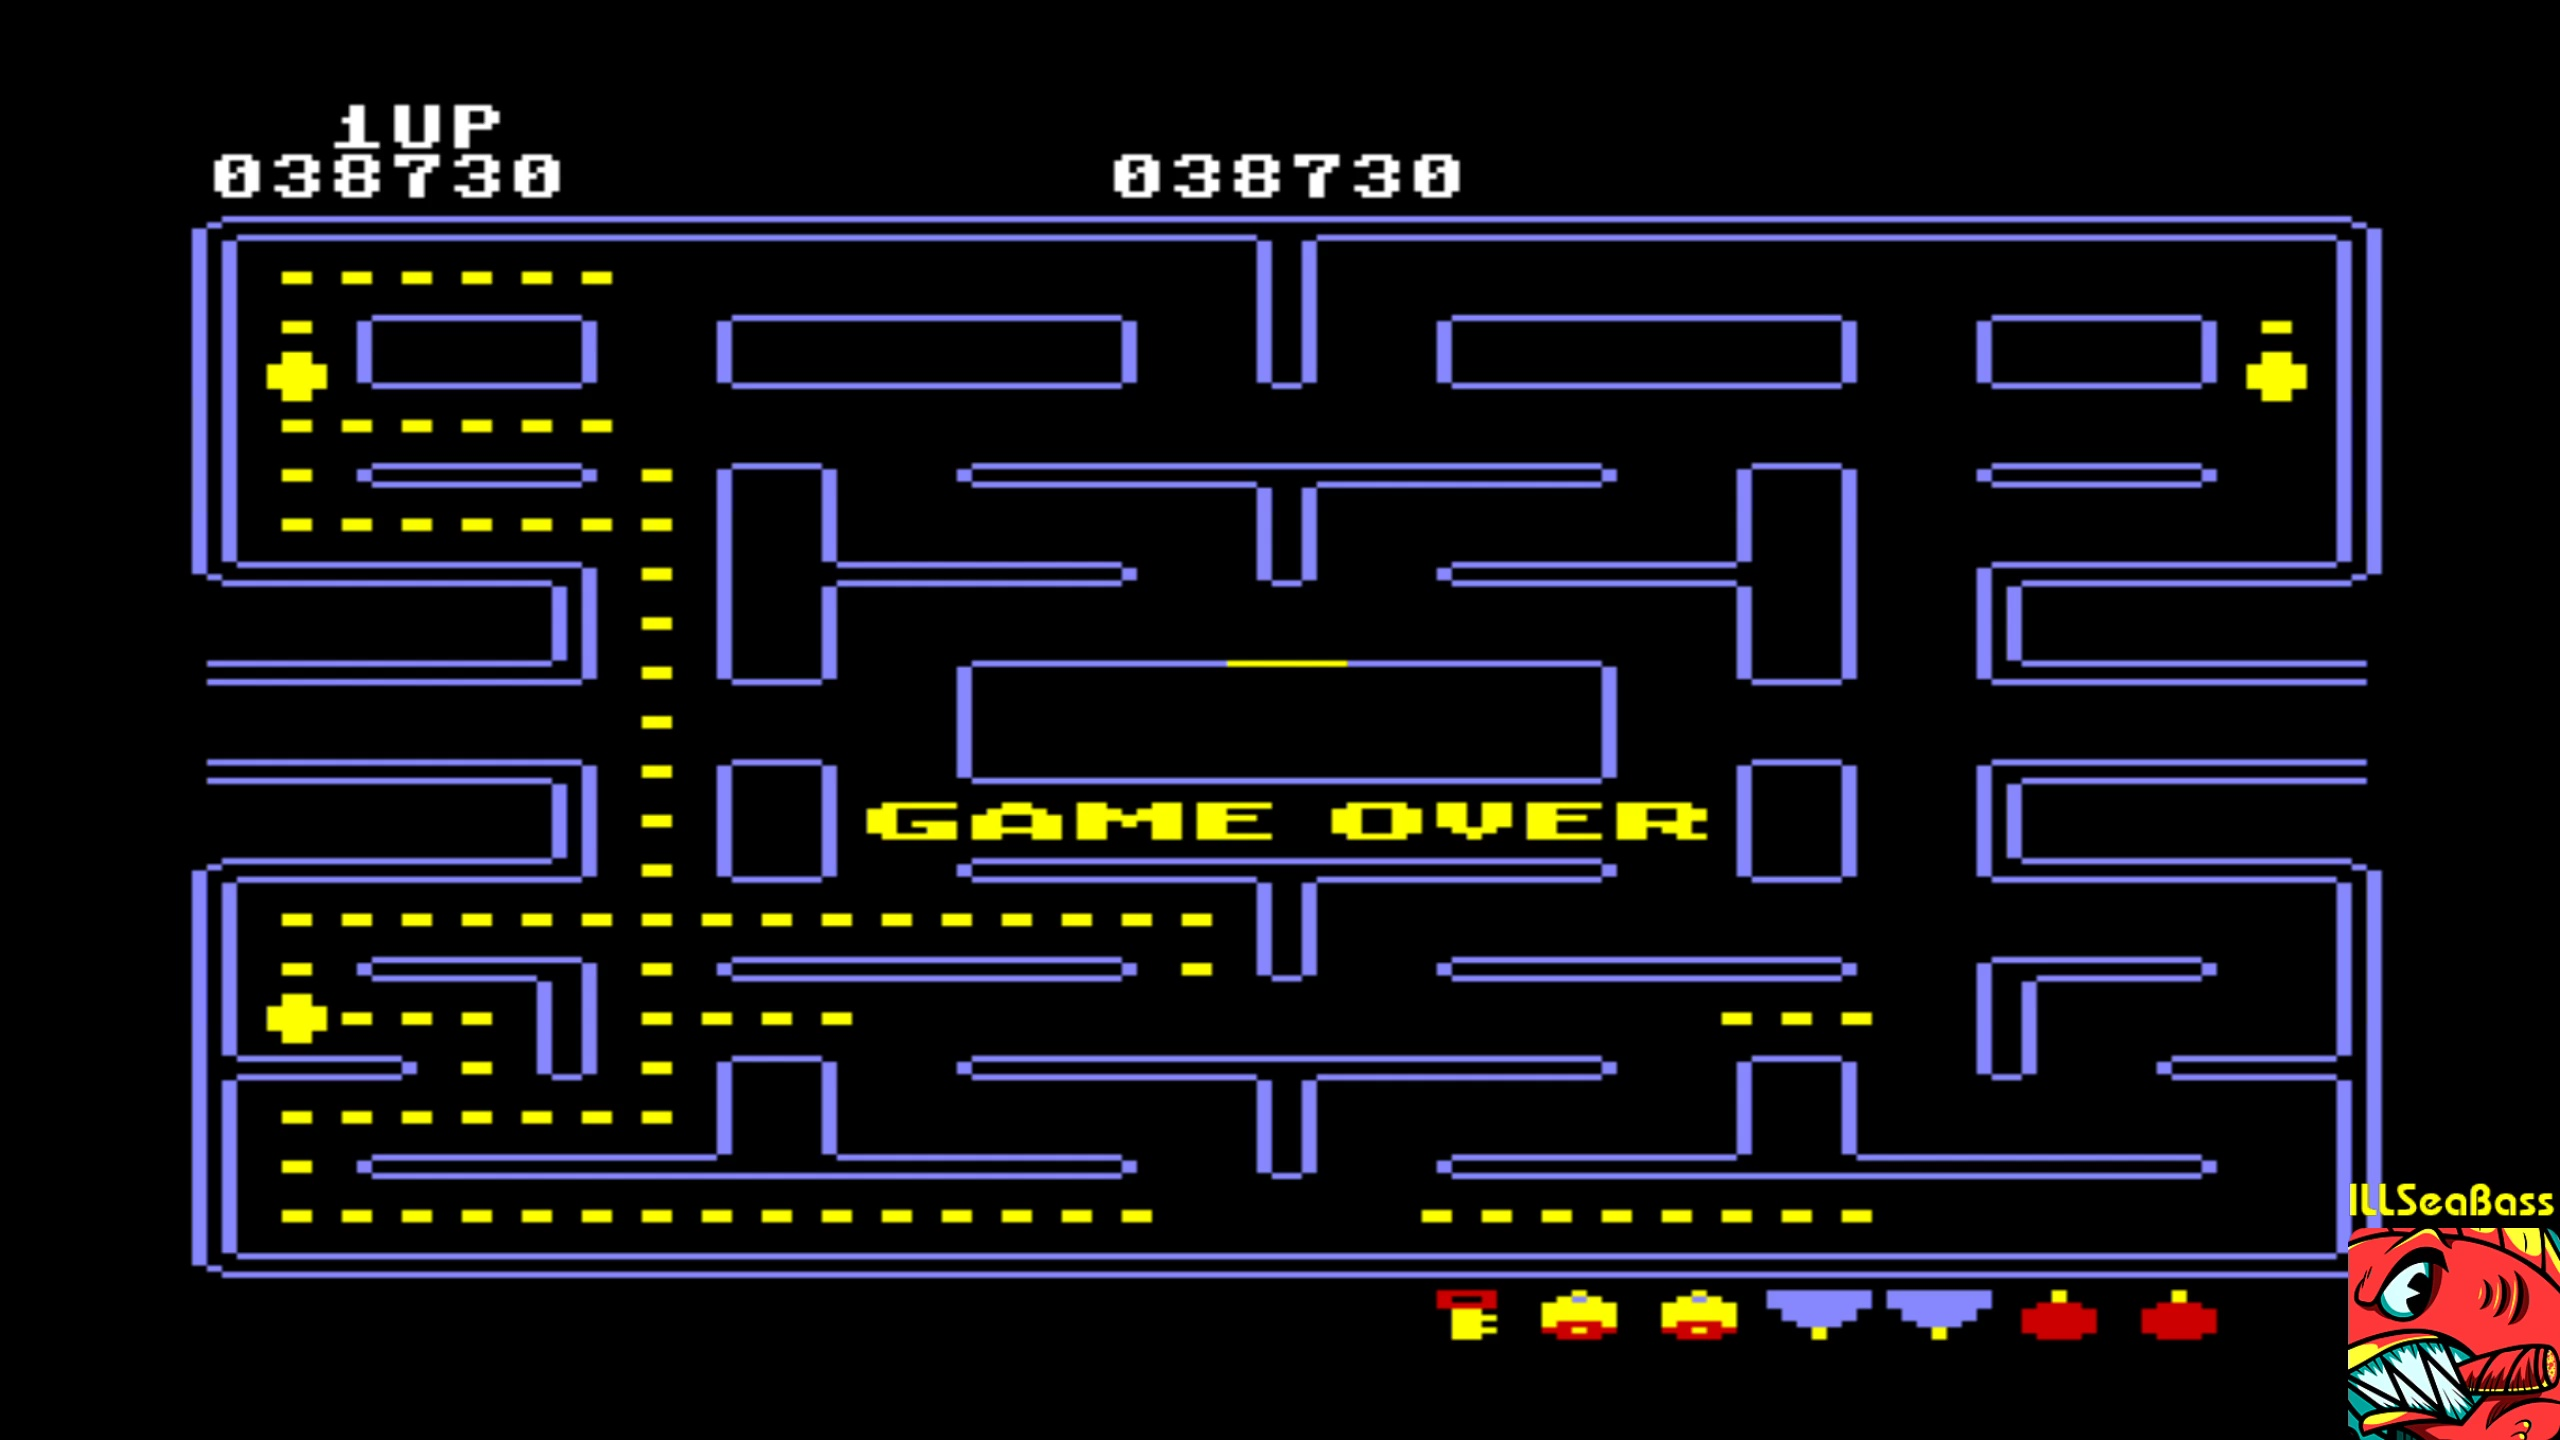 ILLSeaBass: Pac-Man [Berries start] (Commodore 64 Emulated) 38,730 points on 2018-02-12 00:51:25